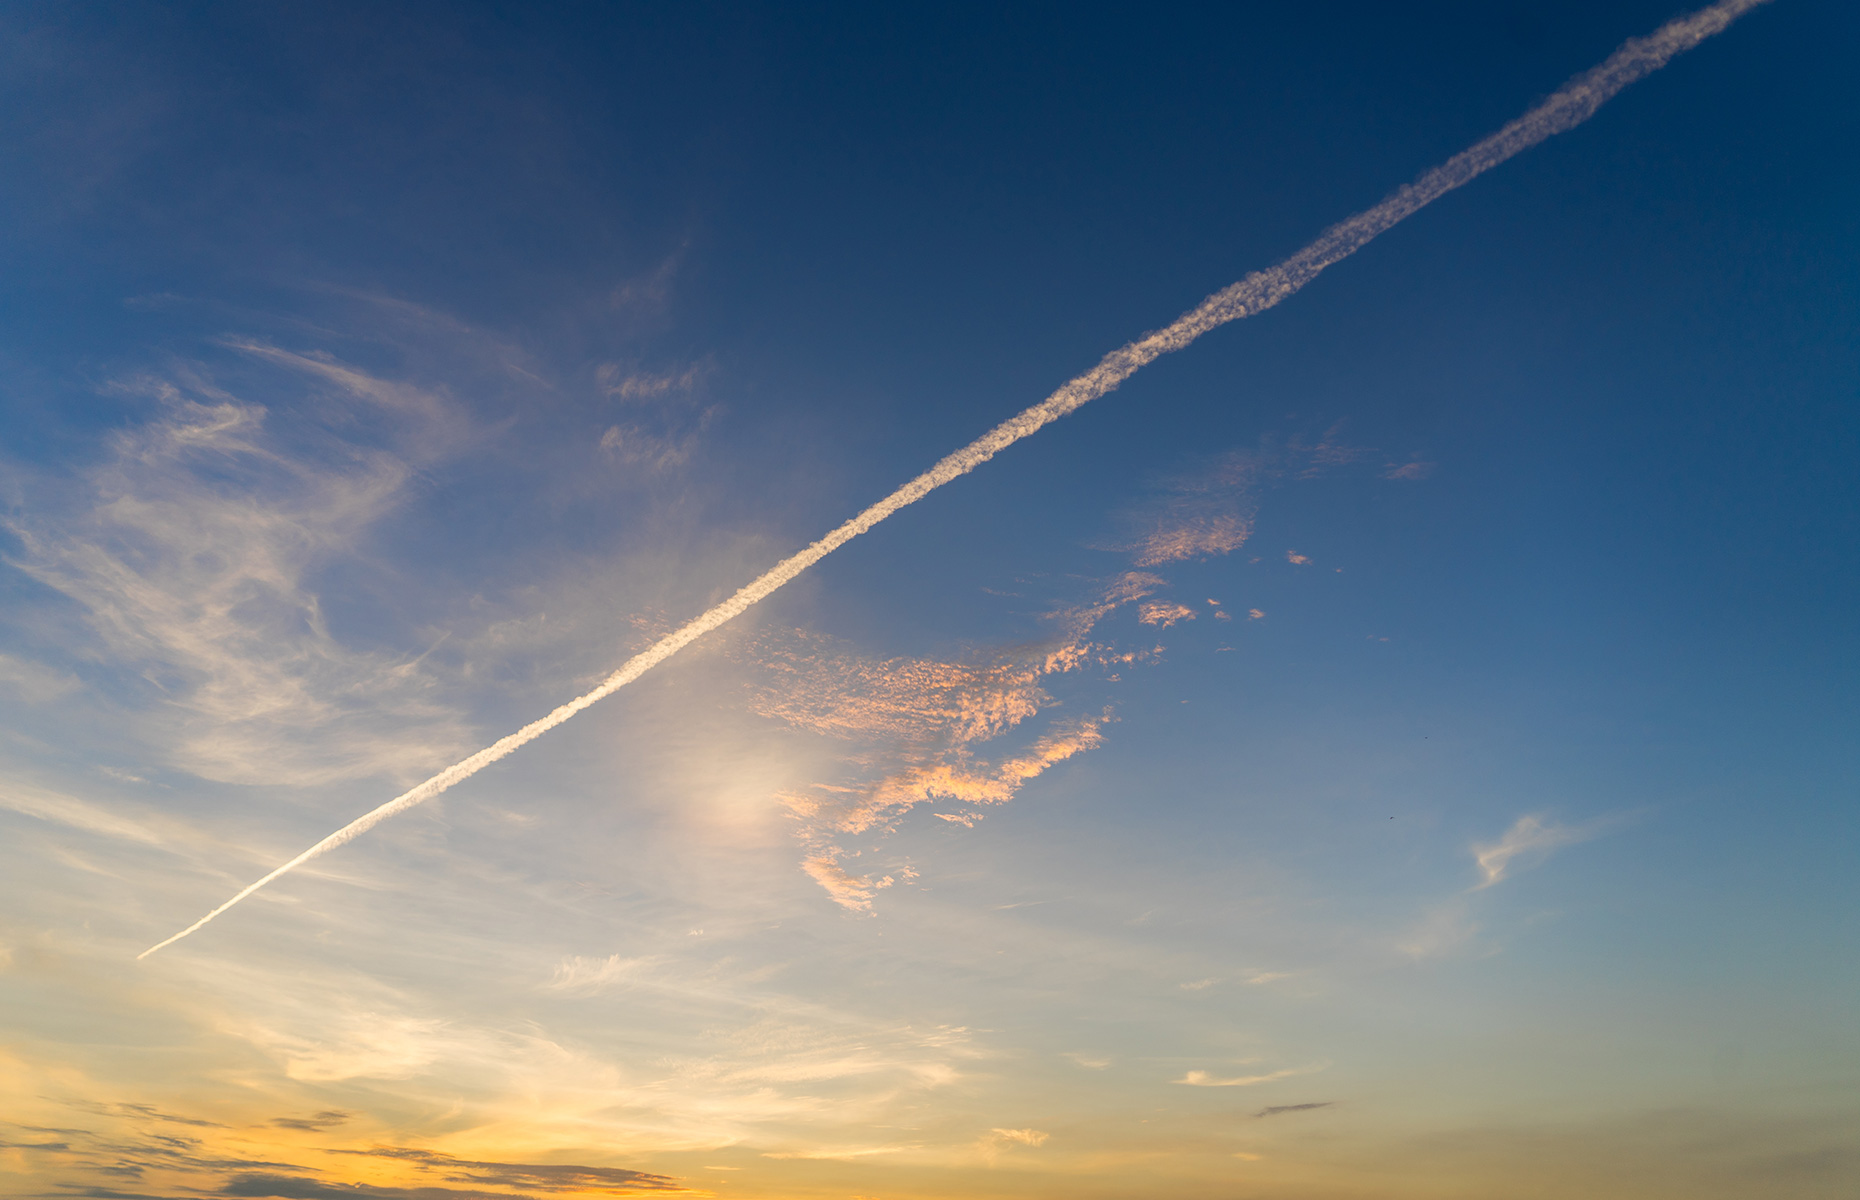 Chemical plane trails in the sky are also pollutants